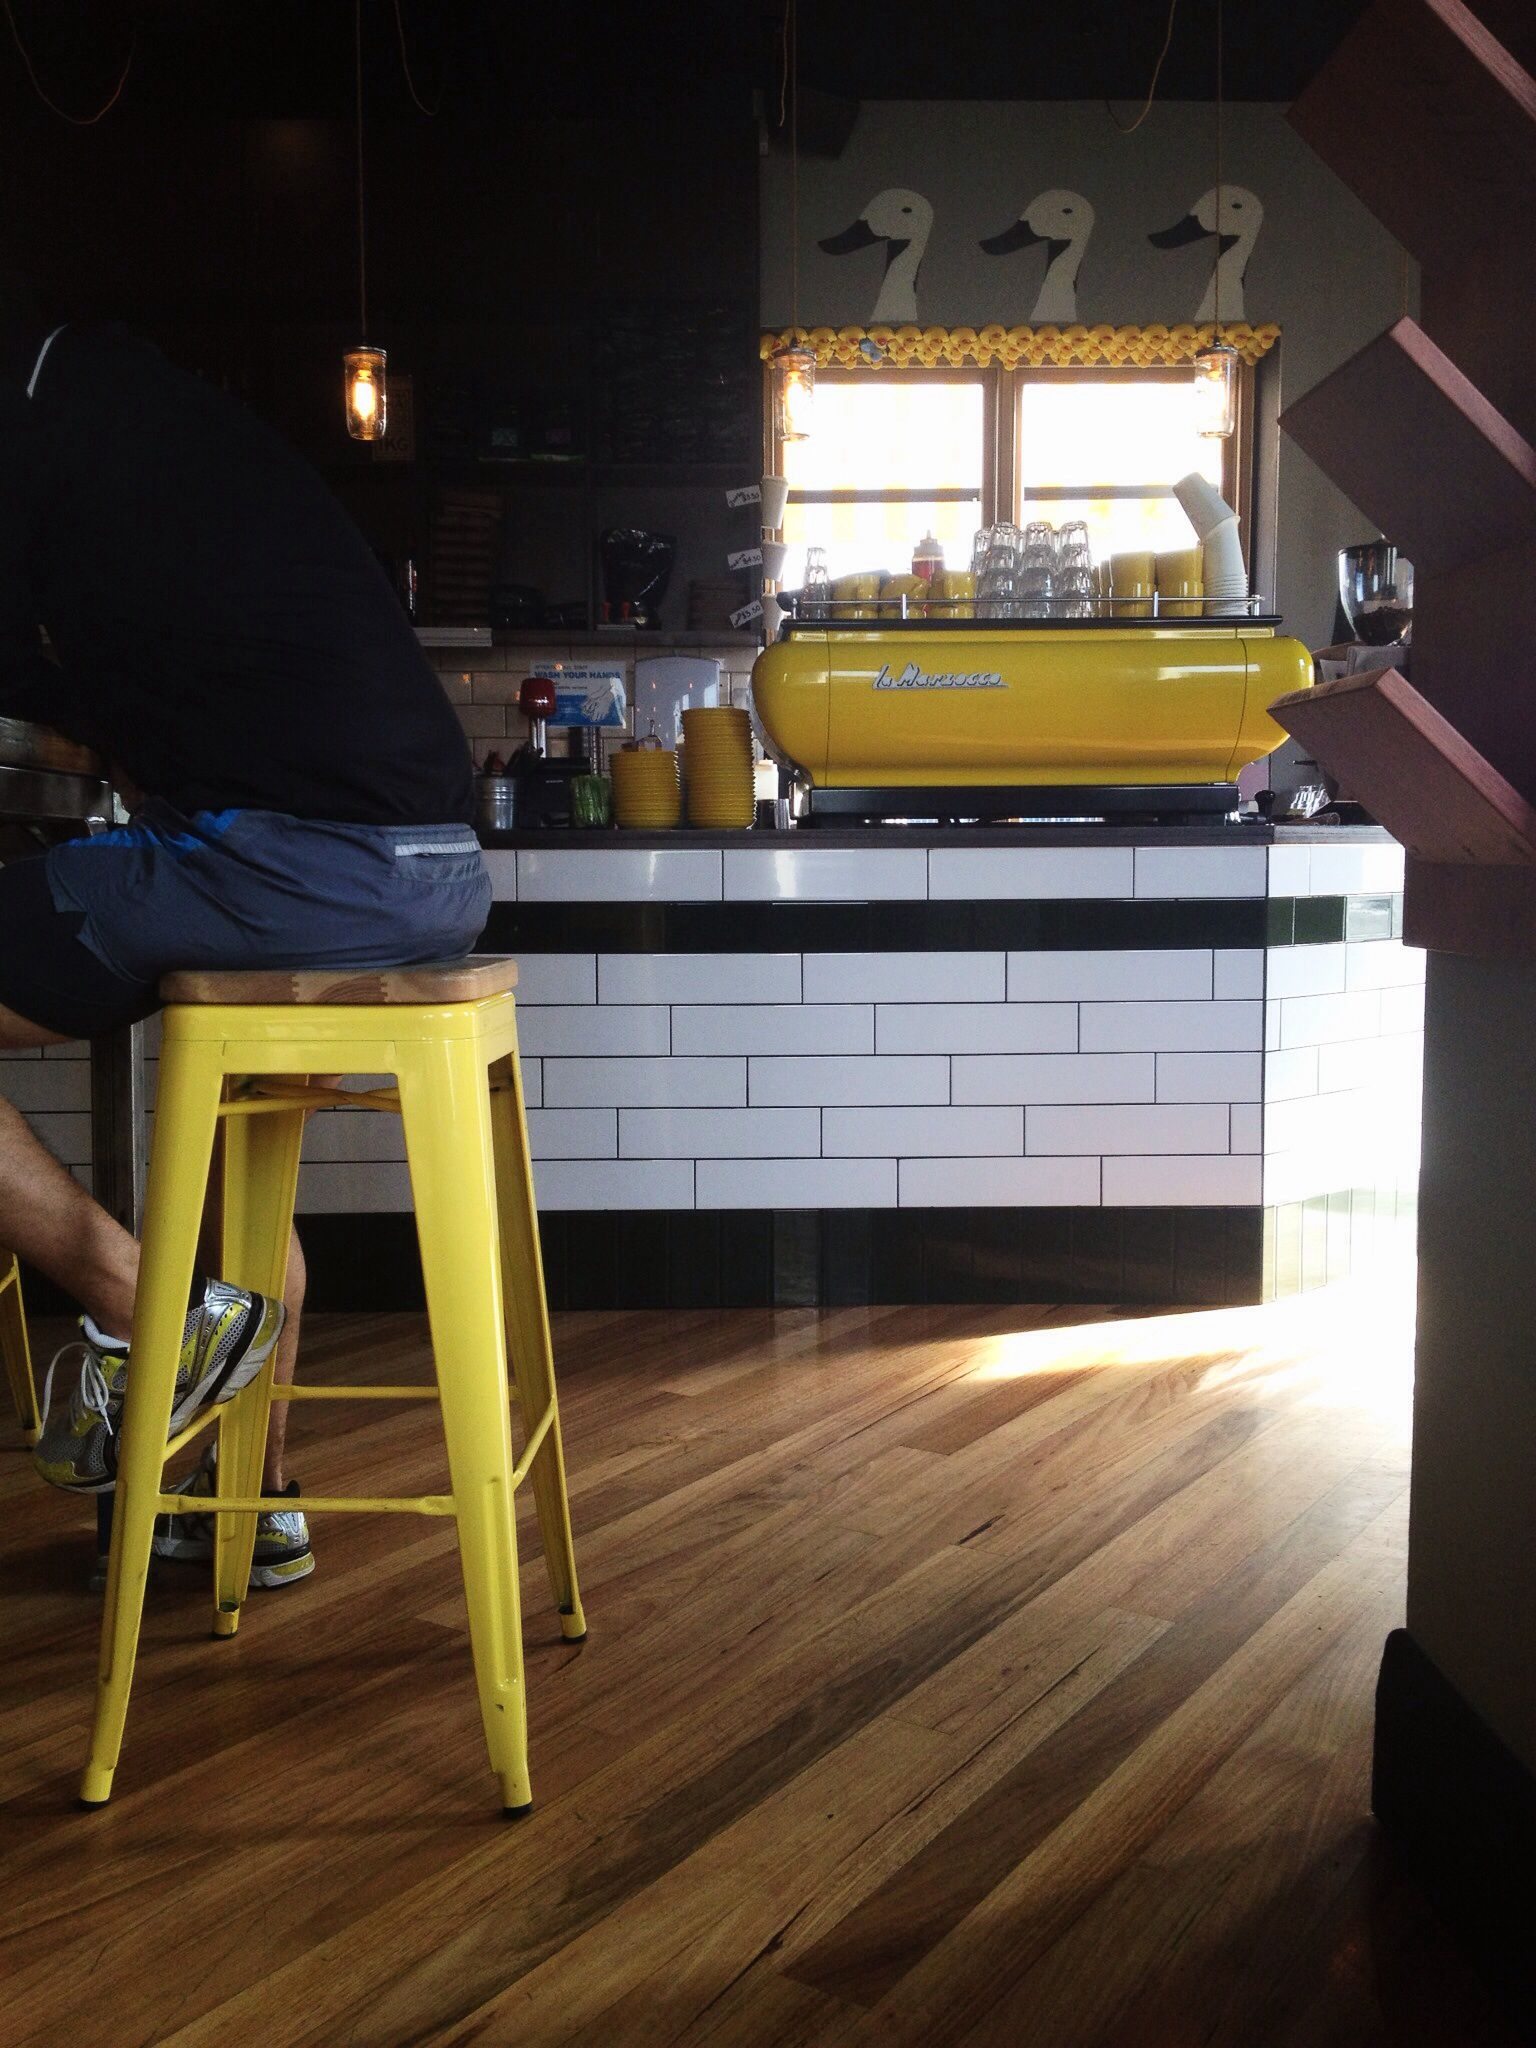 rubber duck cafe in clifton hill. yellow coffee machine, yellow